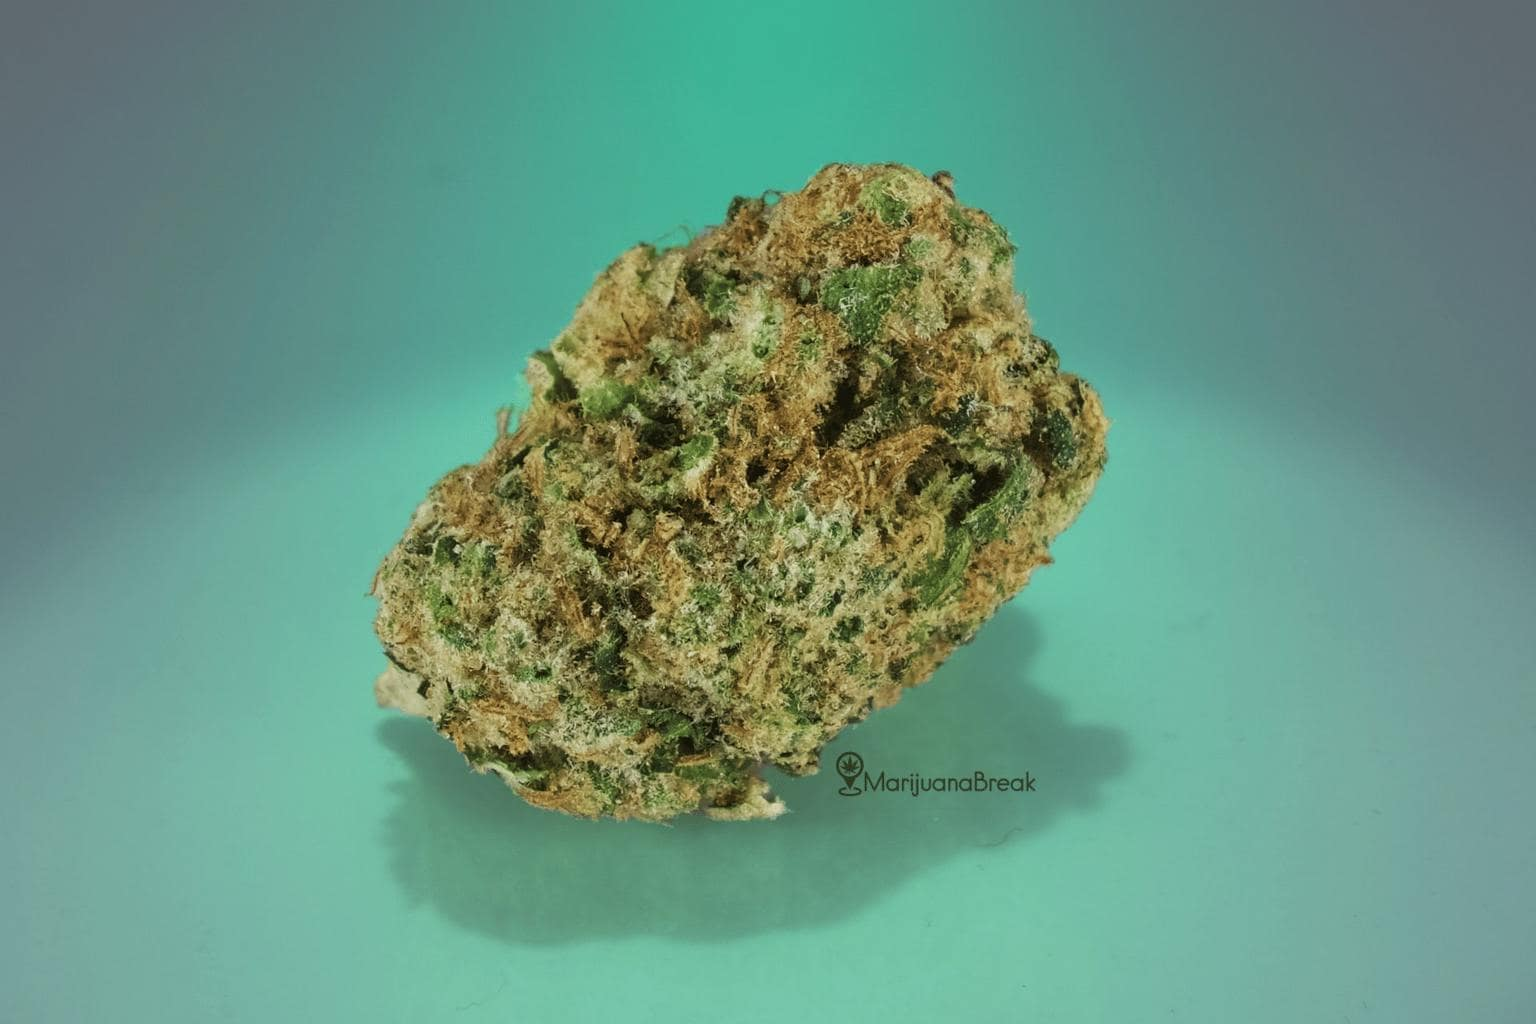 Medical Benefits of Chemdawg Strain